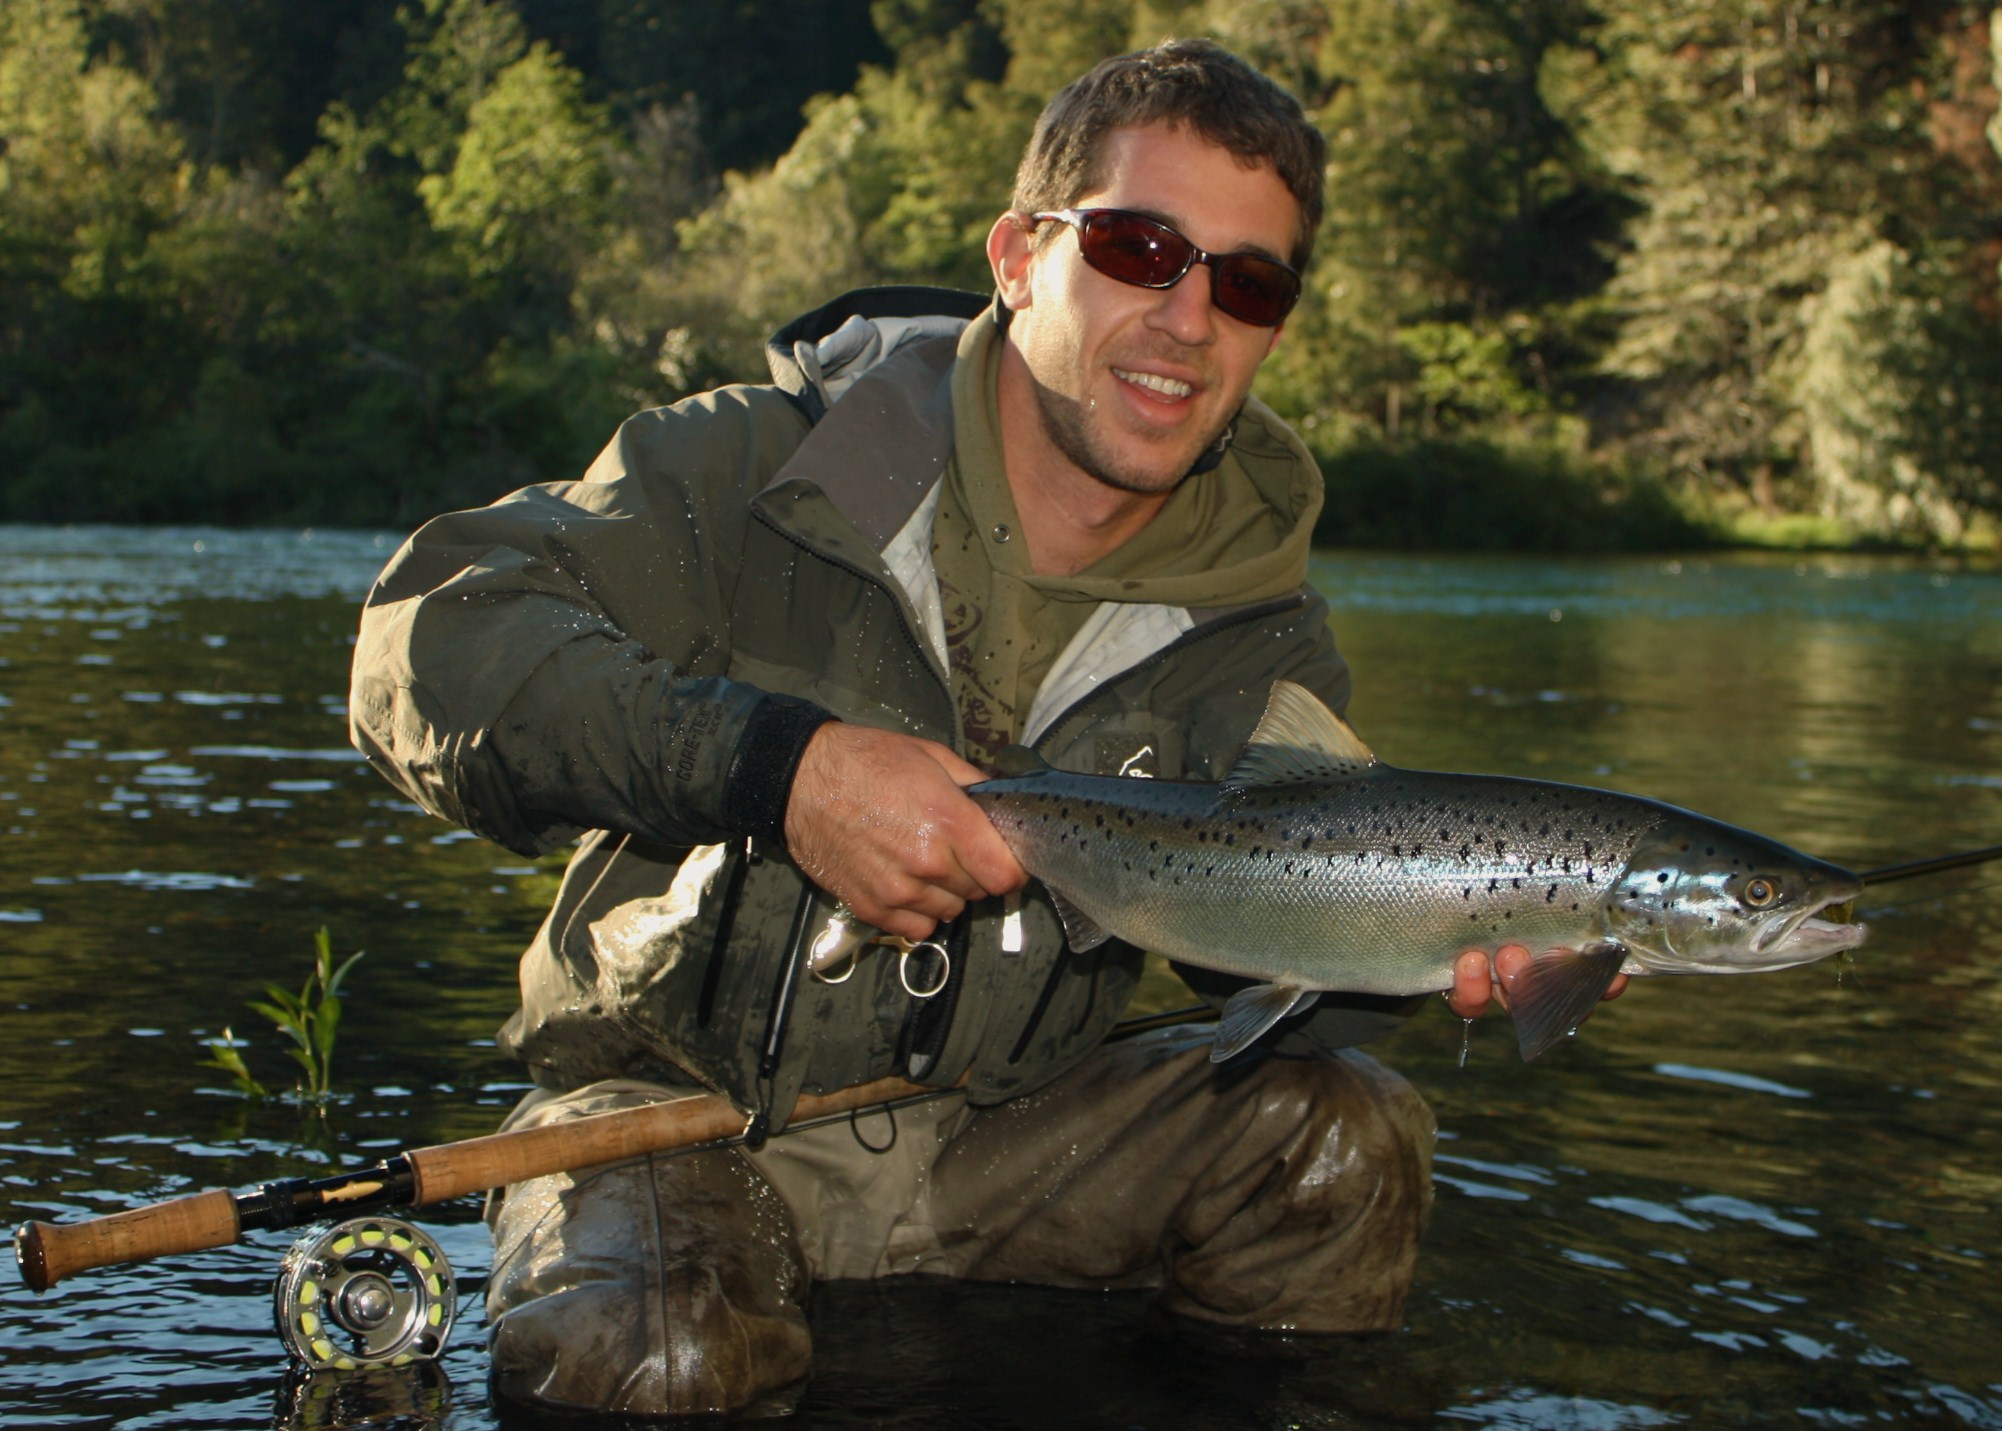 Patagonia fishing trip faraway fly fishing for Patagonia lake fishing